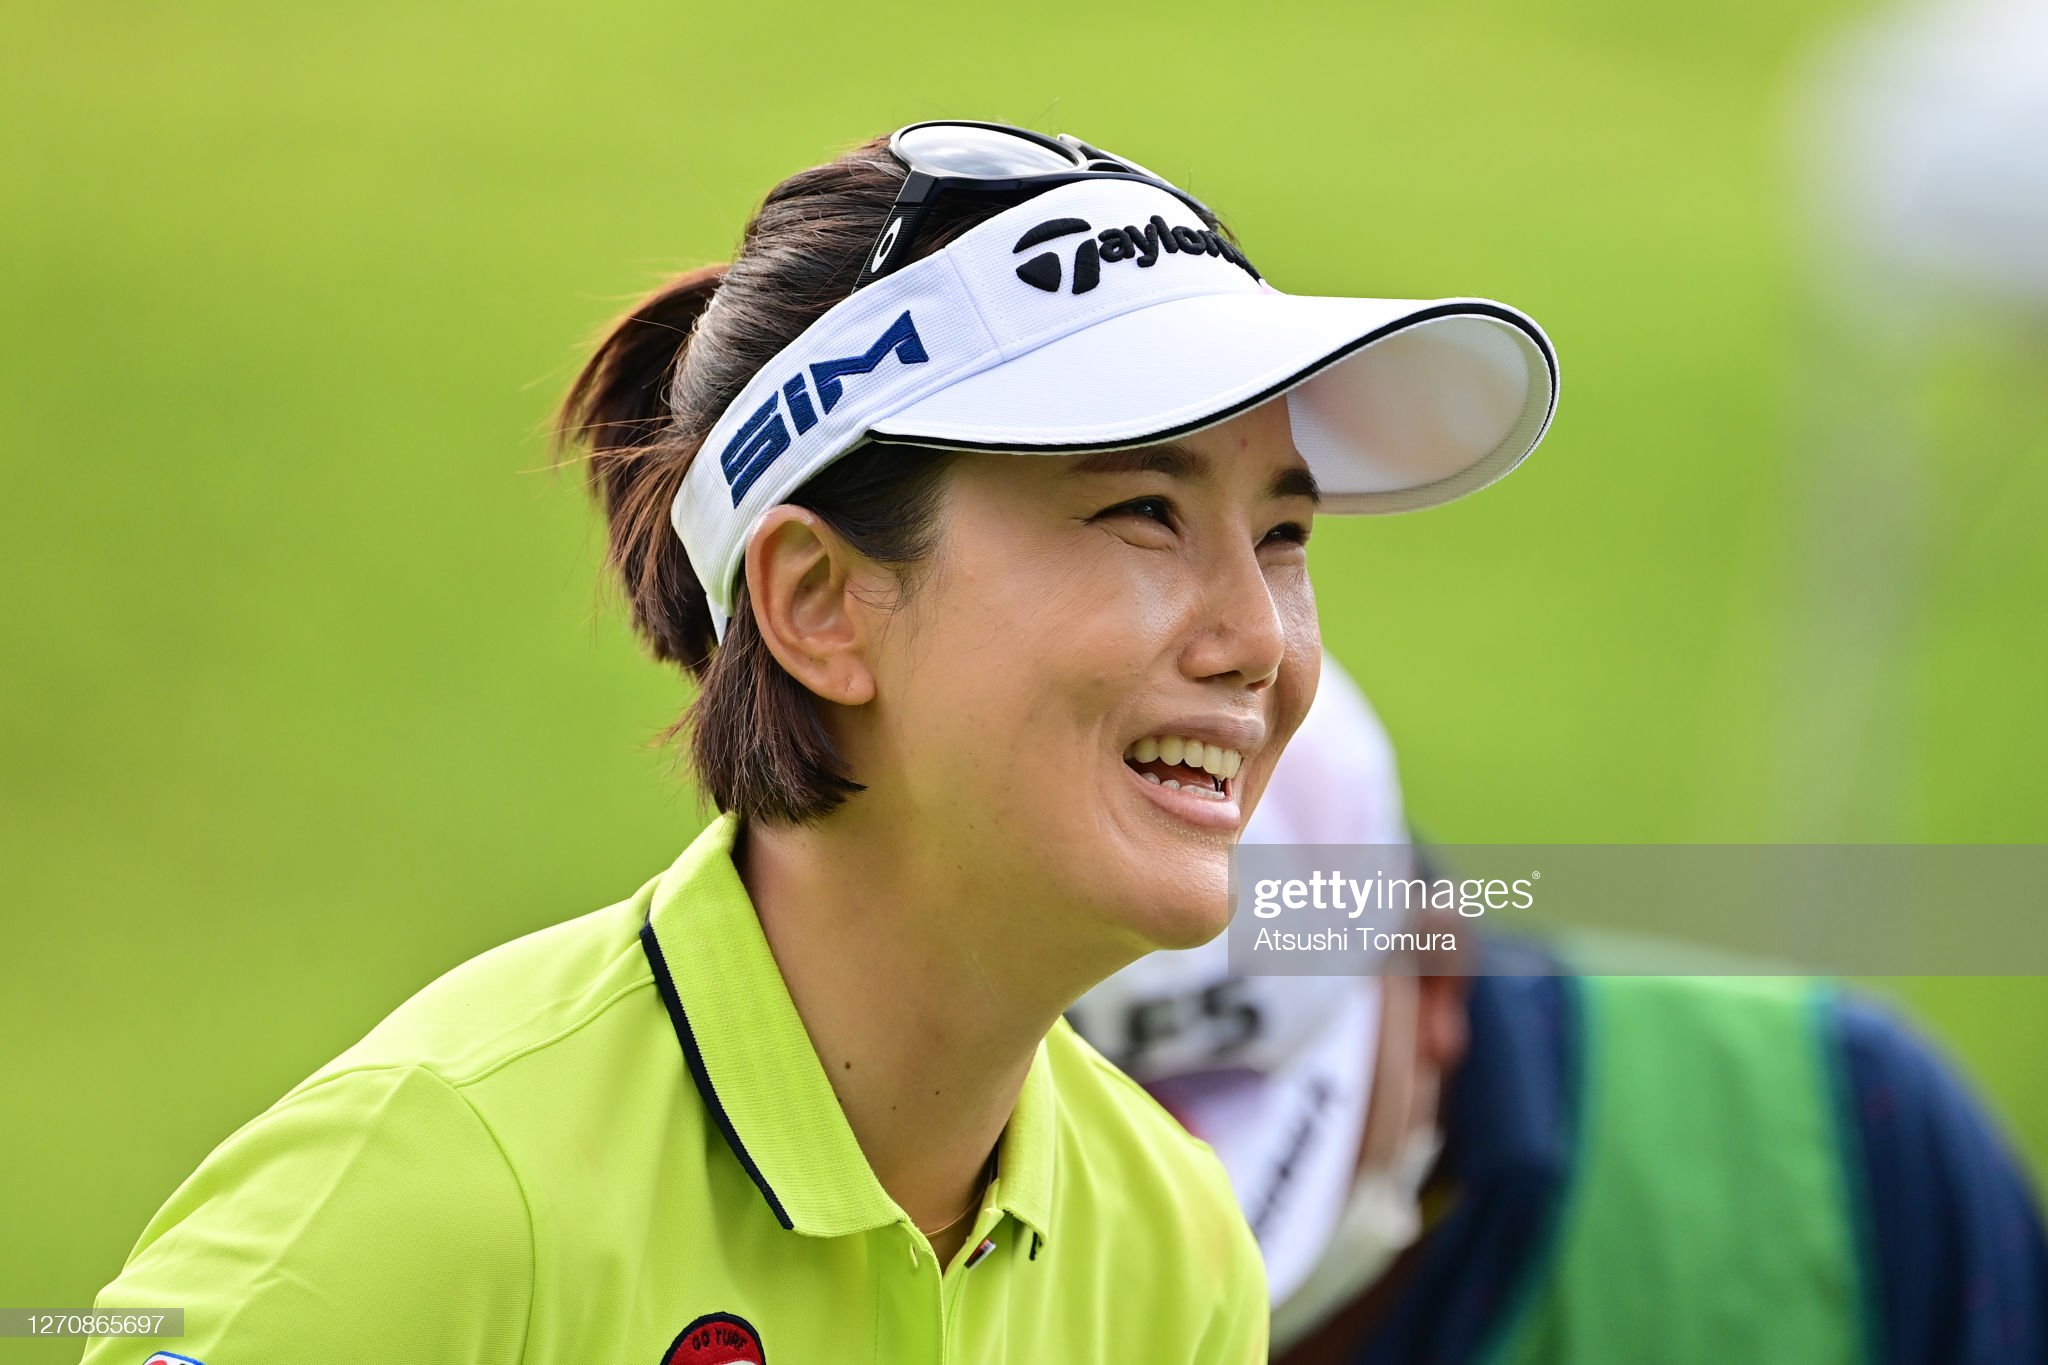 https://media.gettyimages.com/photos/mijeong-jeon-of-south-korea-is-seen-on-the-1st-tee-during-the-final-picture-id1270865697?s=2048x2048